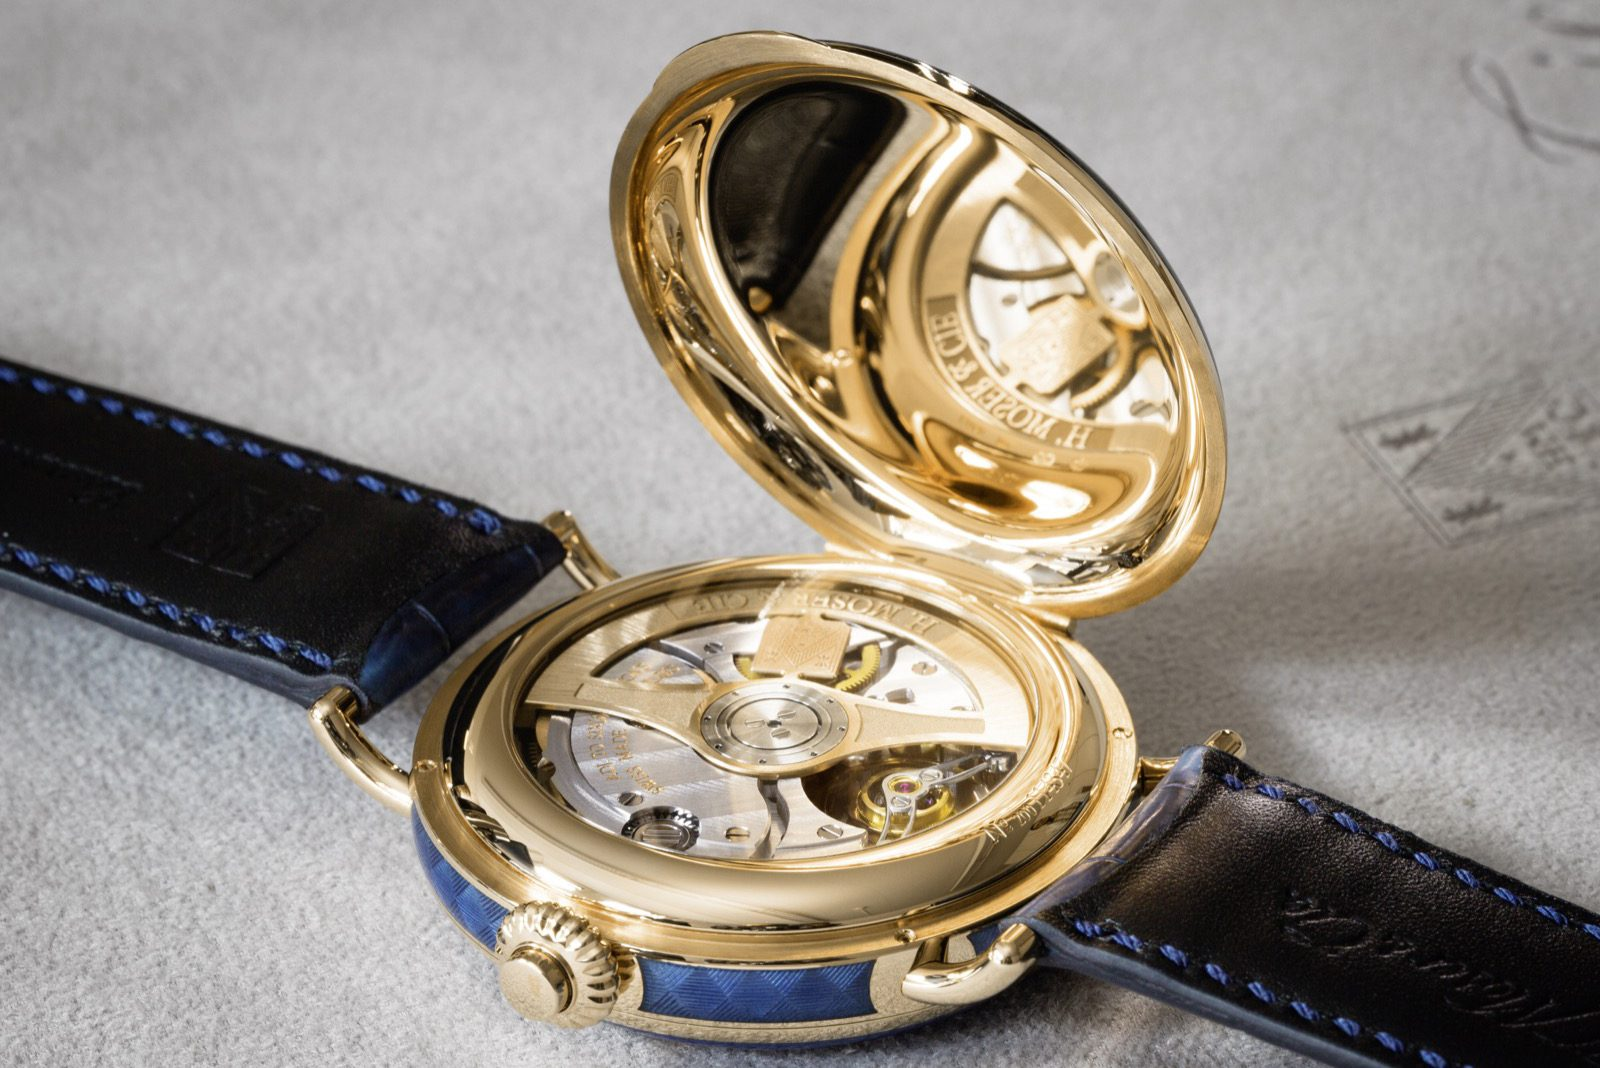 Heritage Tourbillon - 1